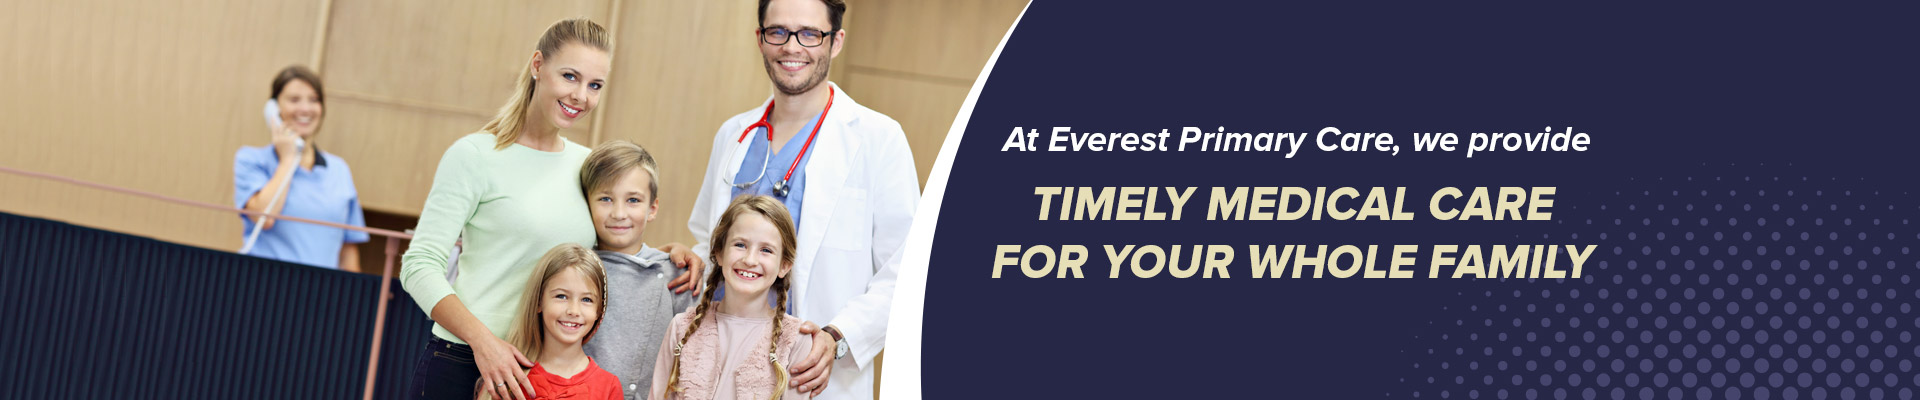 Everest Primary Care